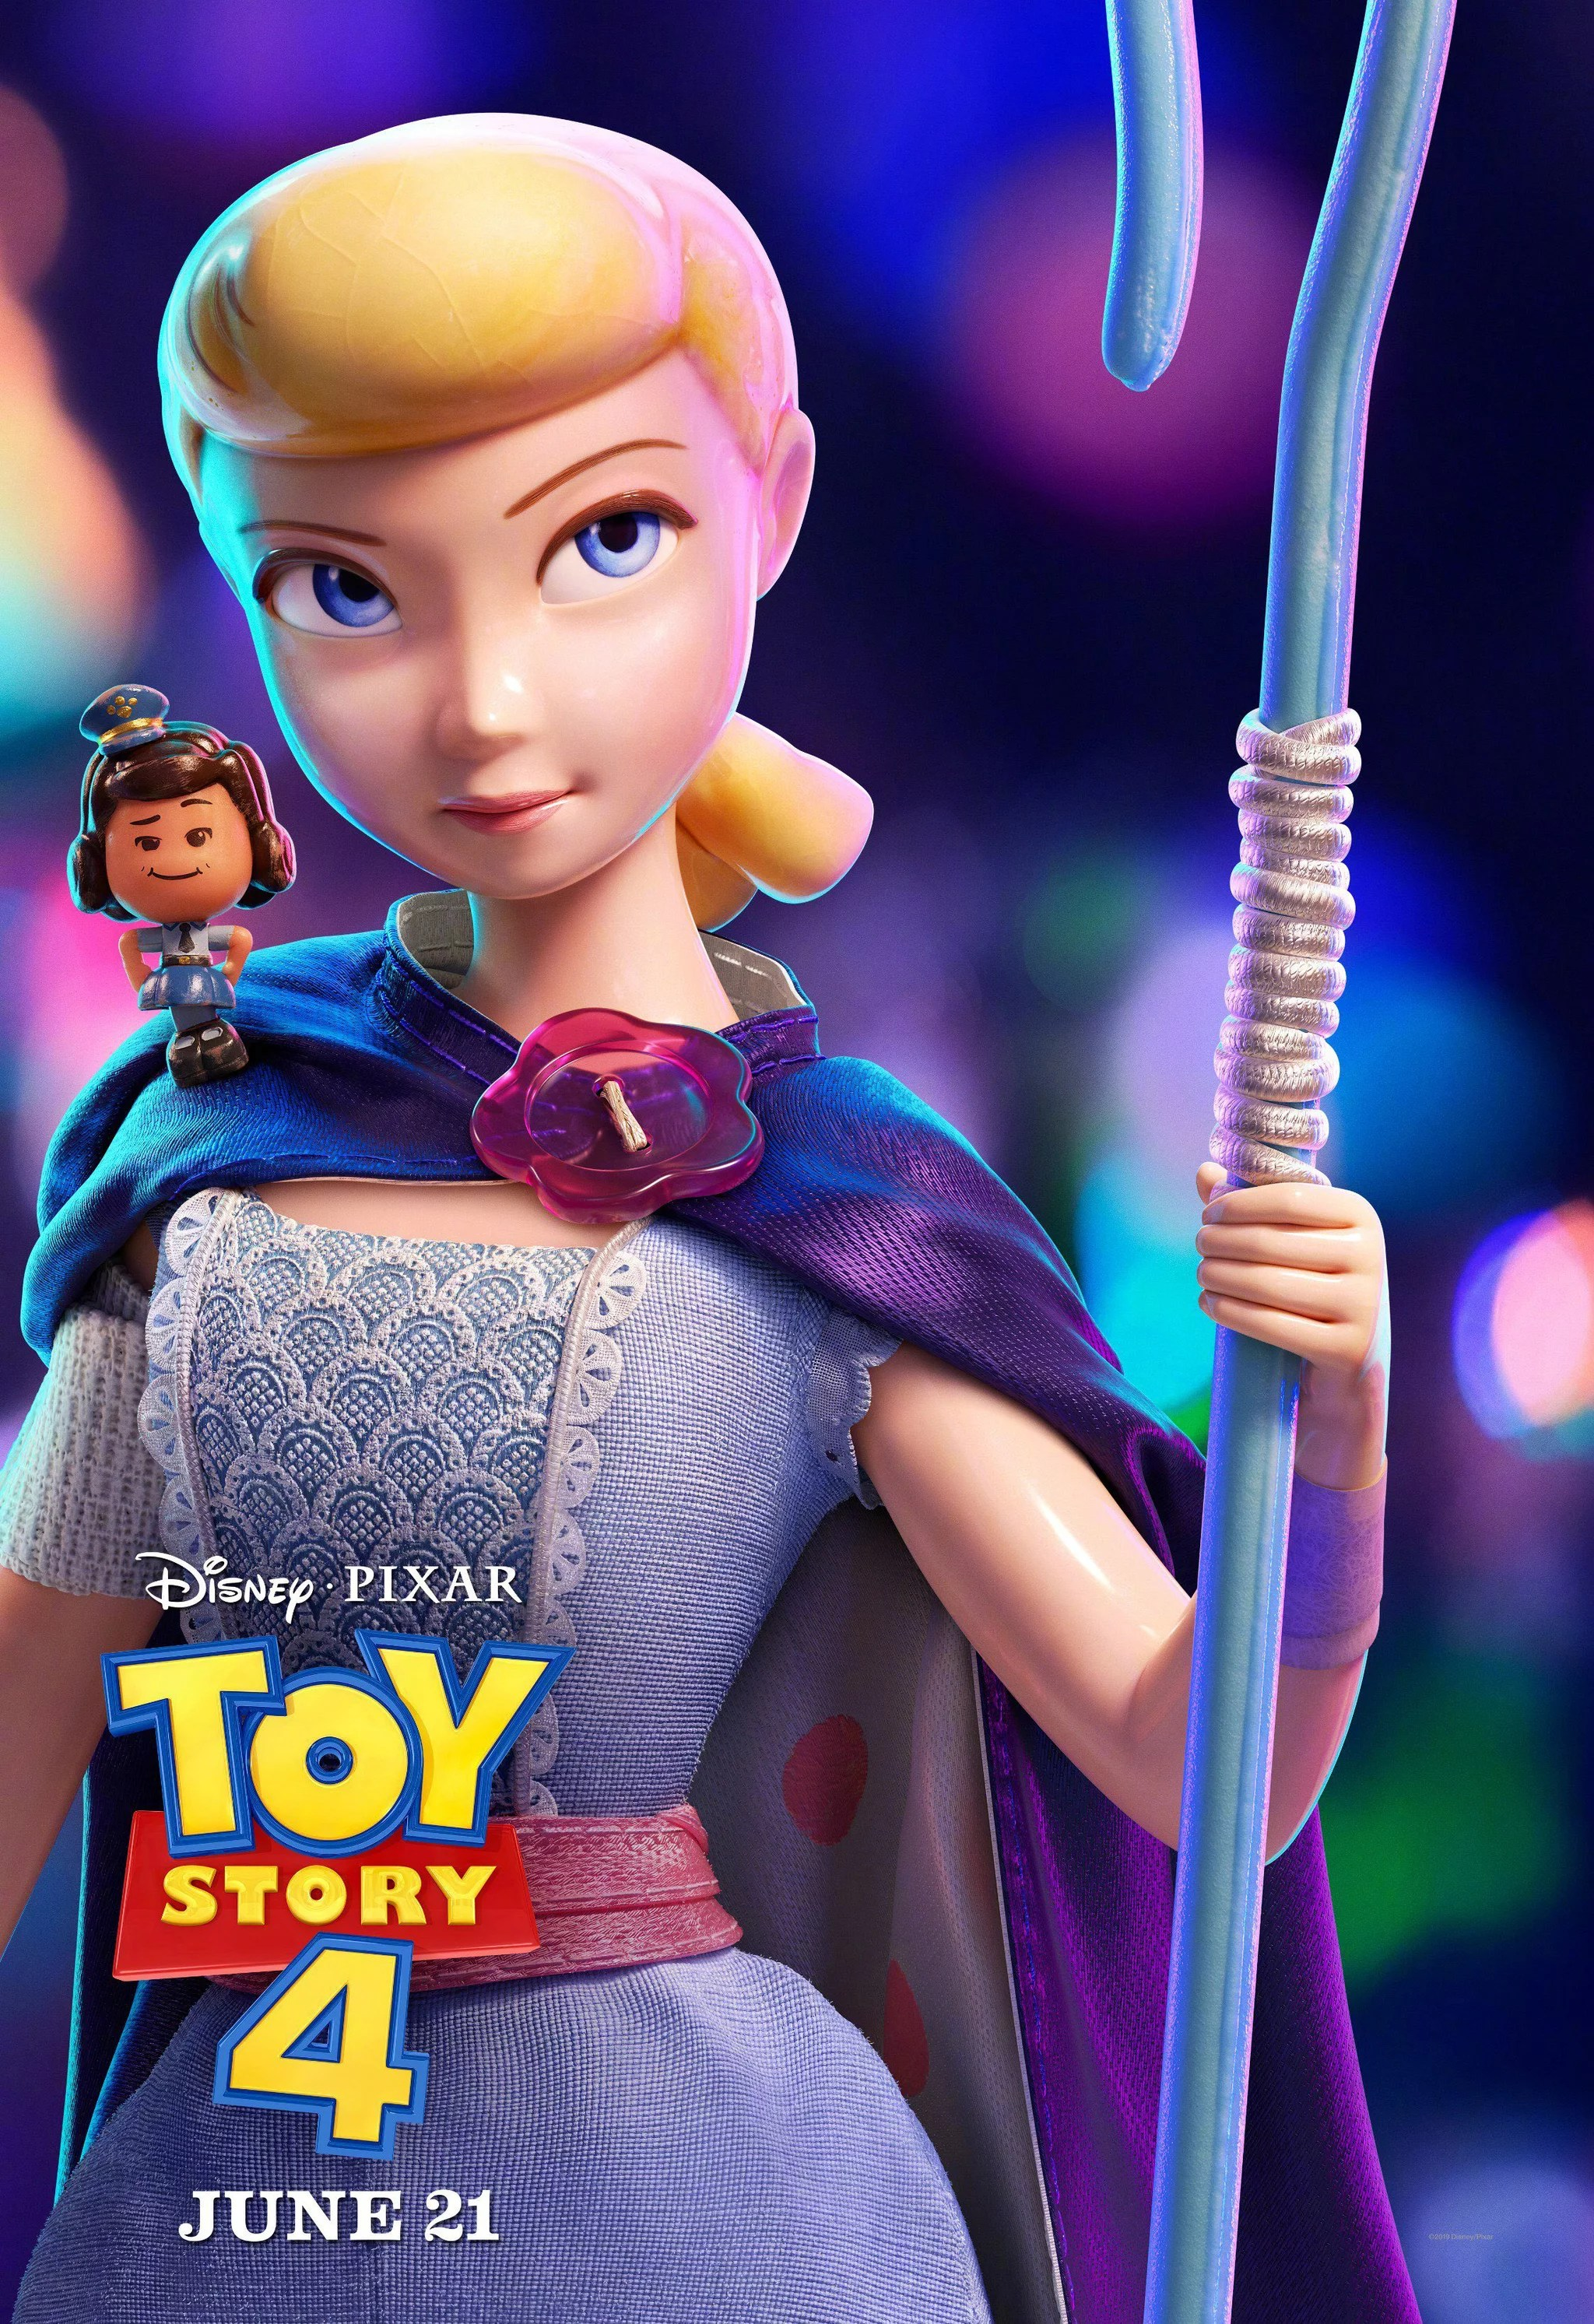 What Happens To Bo Peep In Toy Story 4